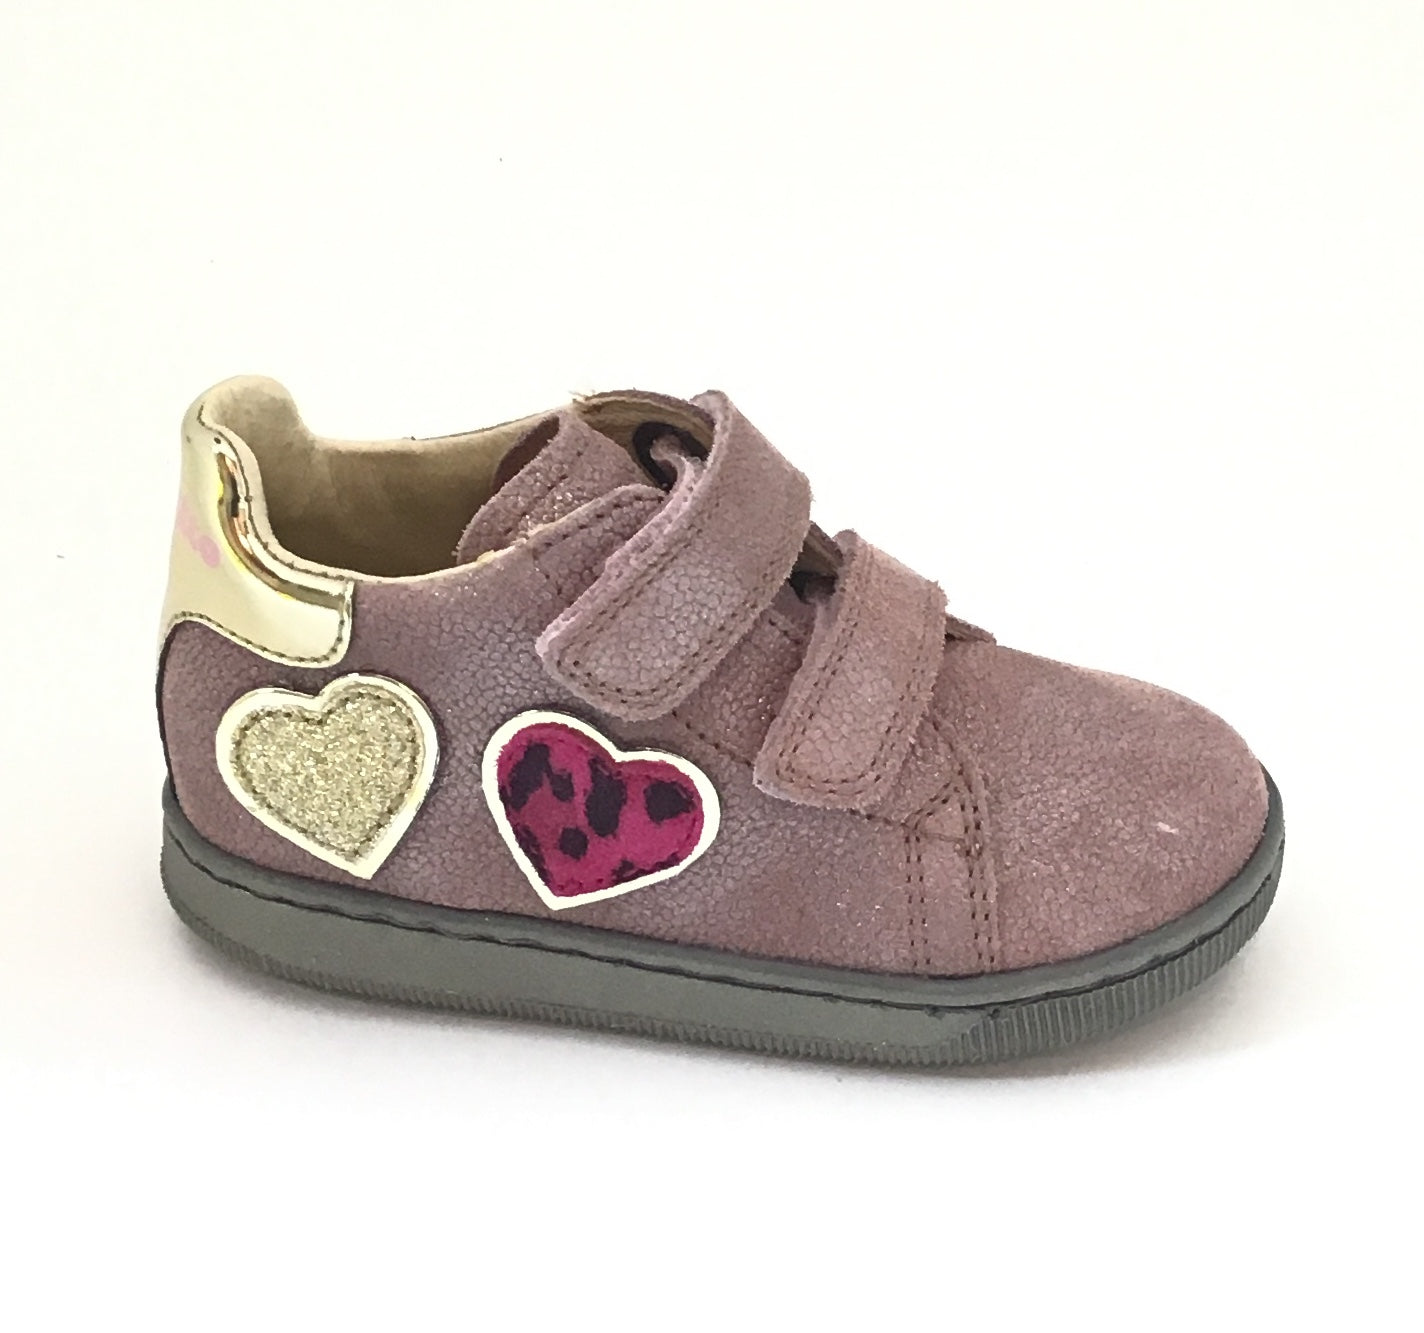 Falcotto Pink Shoe with Hearts on Side and Double Velcro